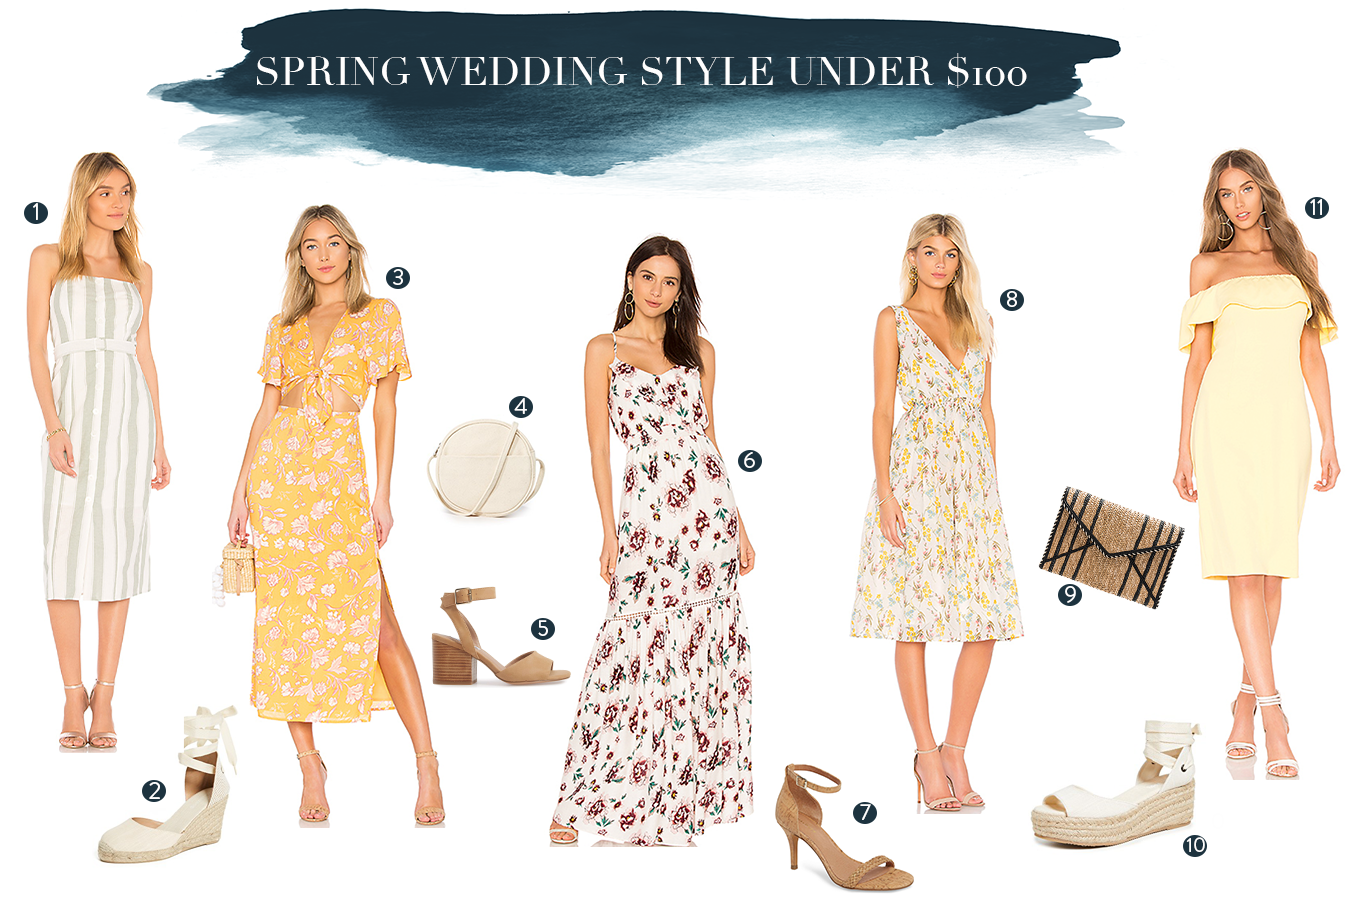 Jess Ann Kirby's spring style picks under $100